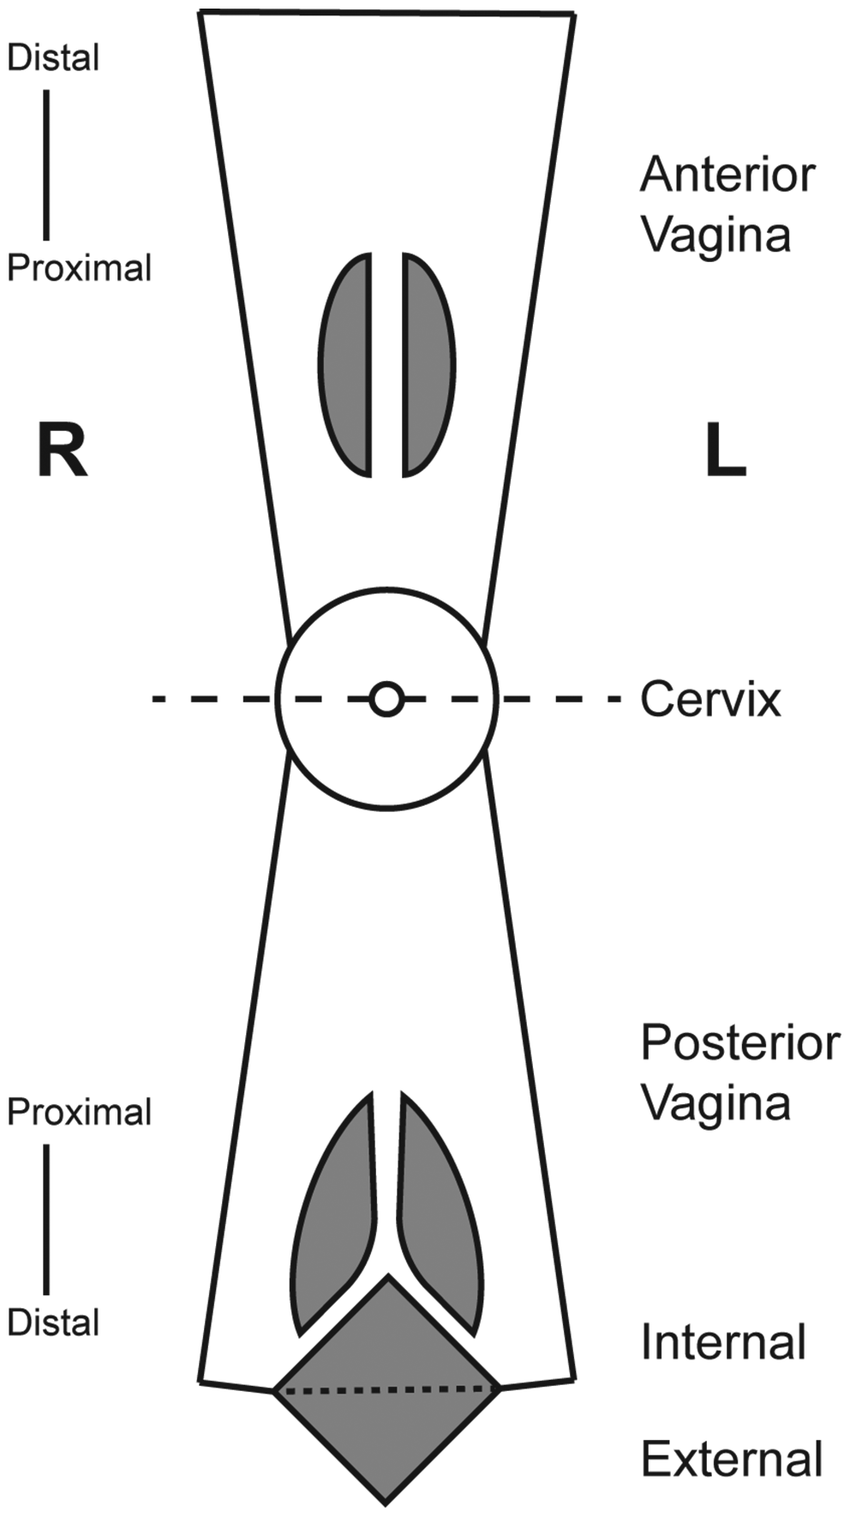 medium resolution of diagrammatic representation of the vaginal tract identifying anatomical locations where tissue specimens were obtained dashed